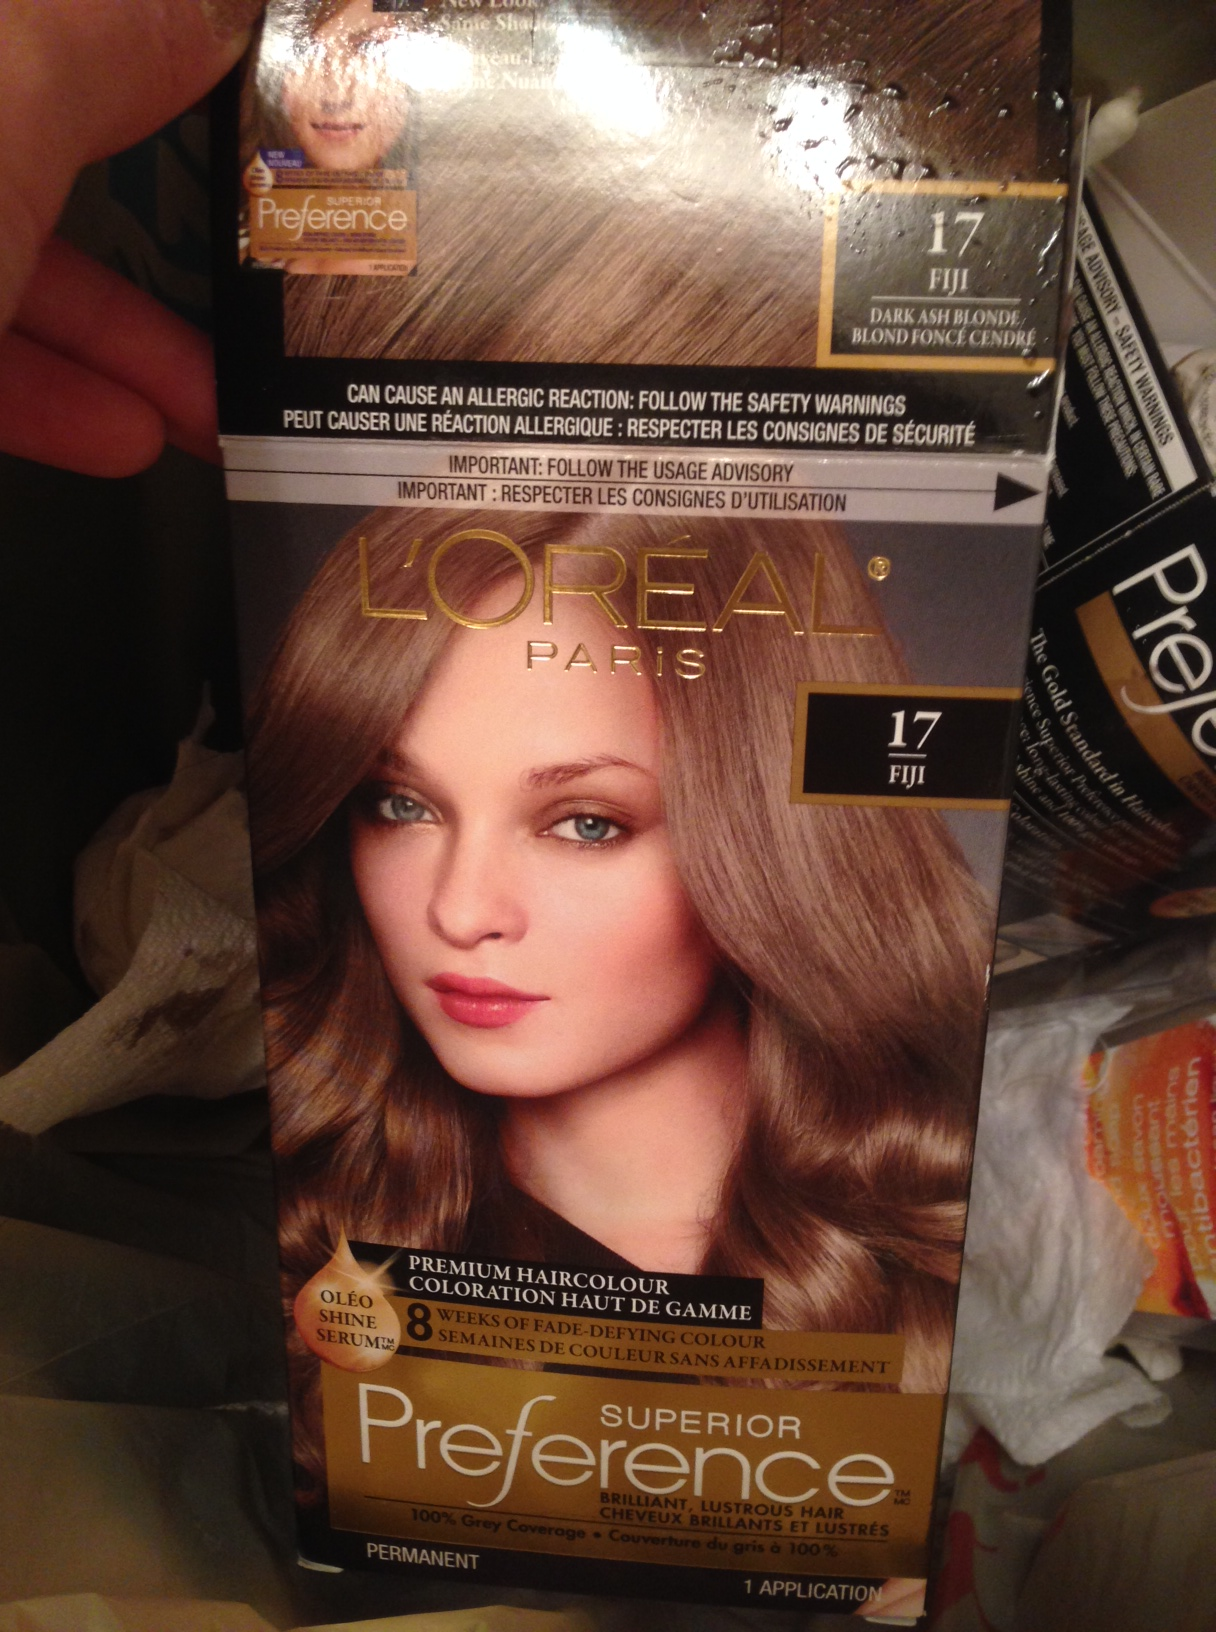 I Dyed My Hair 17fiji Dark Ash Blonde By Superior Preference